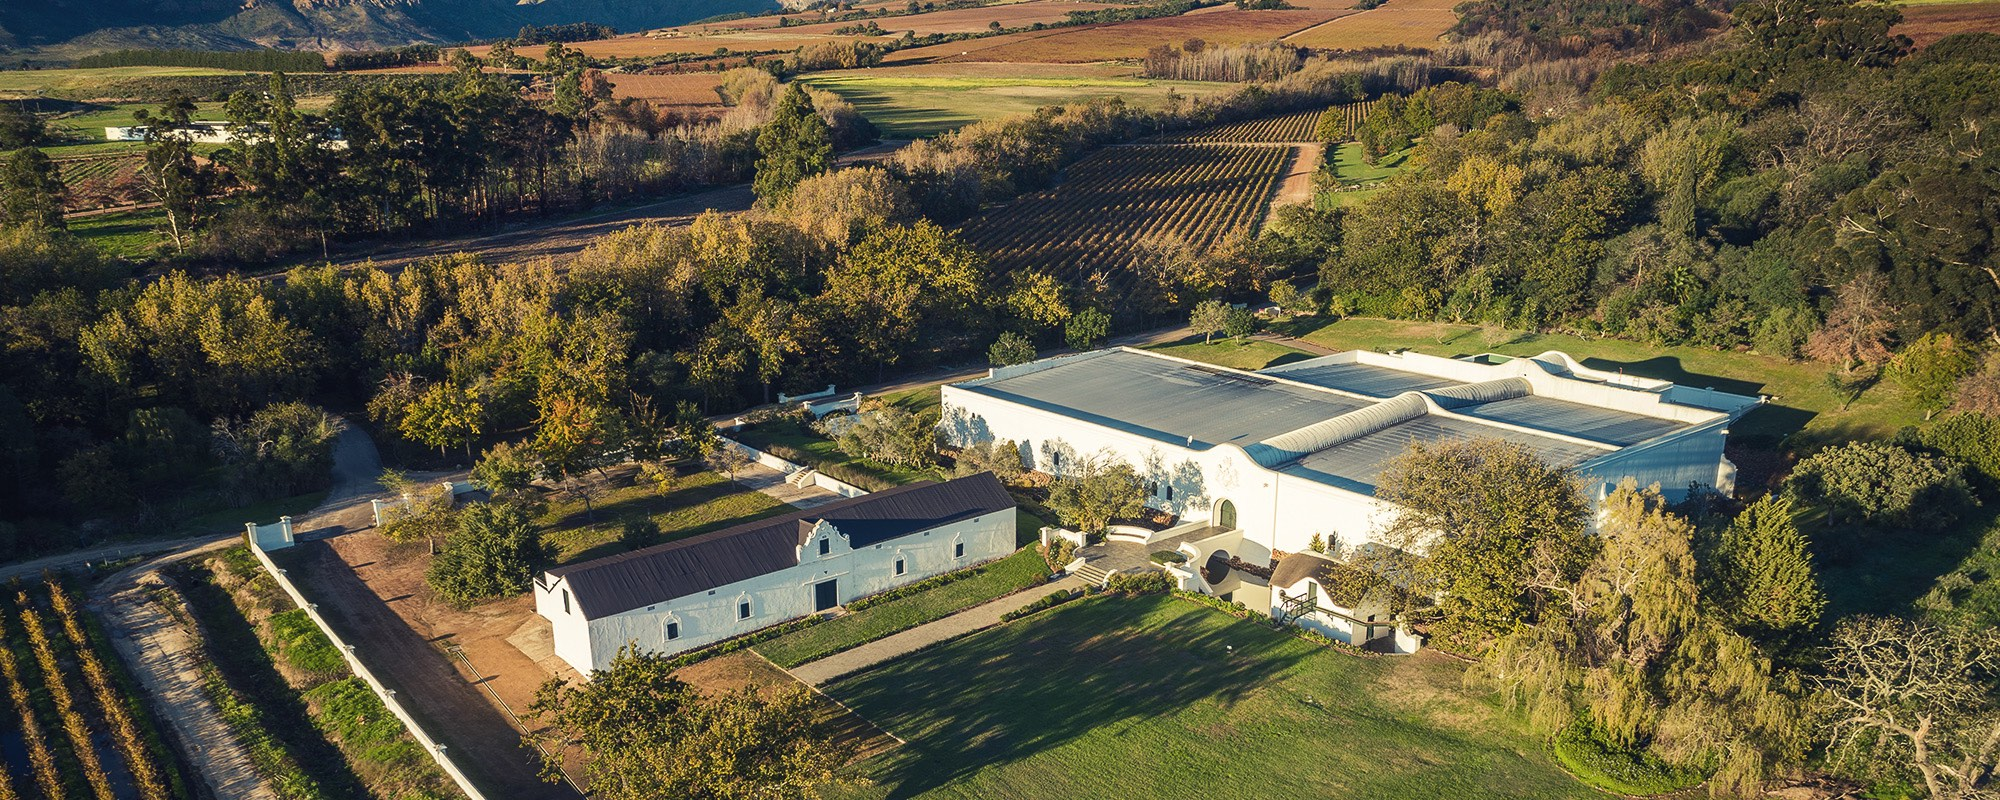 Aerial view of the wine cellar at Plaisir de Merle in Franschhoek